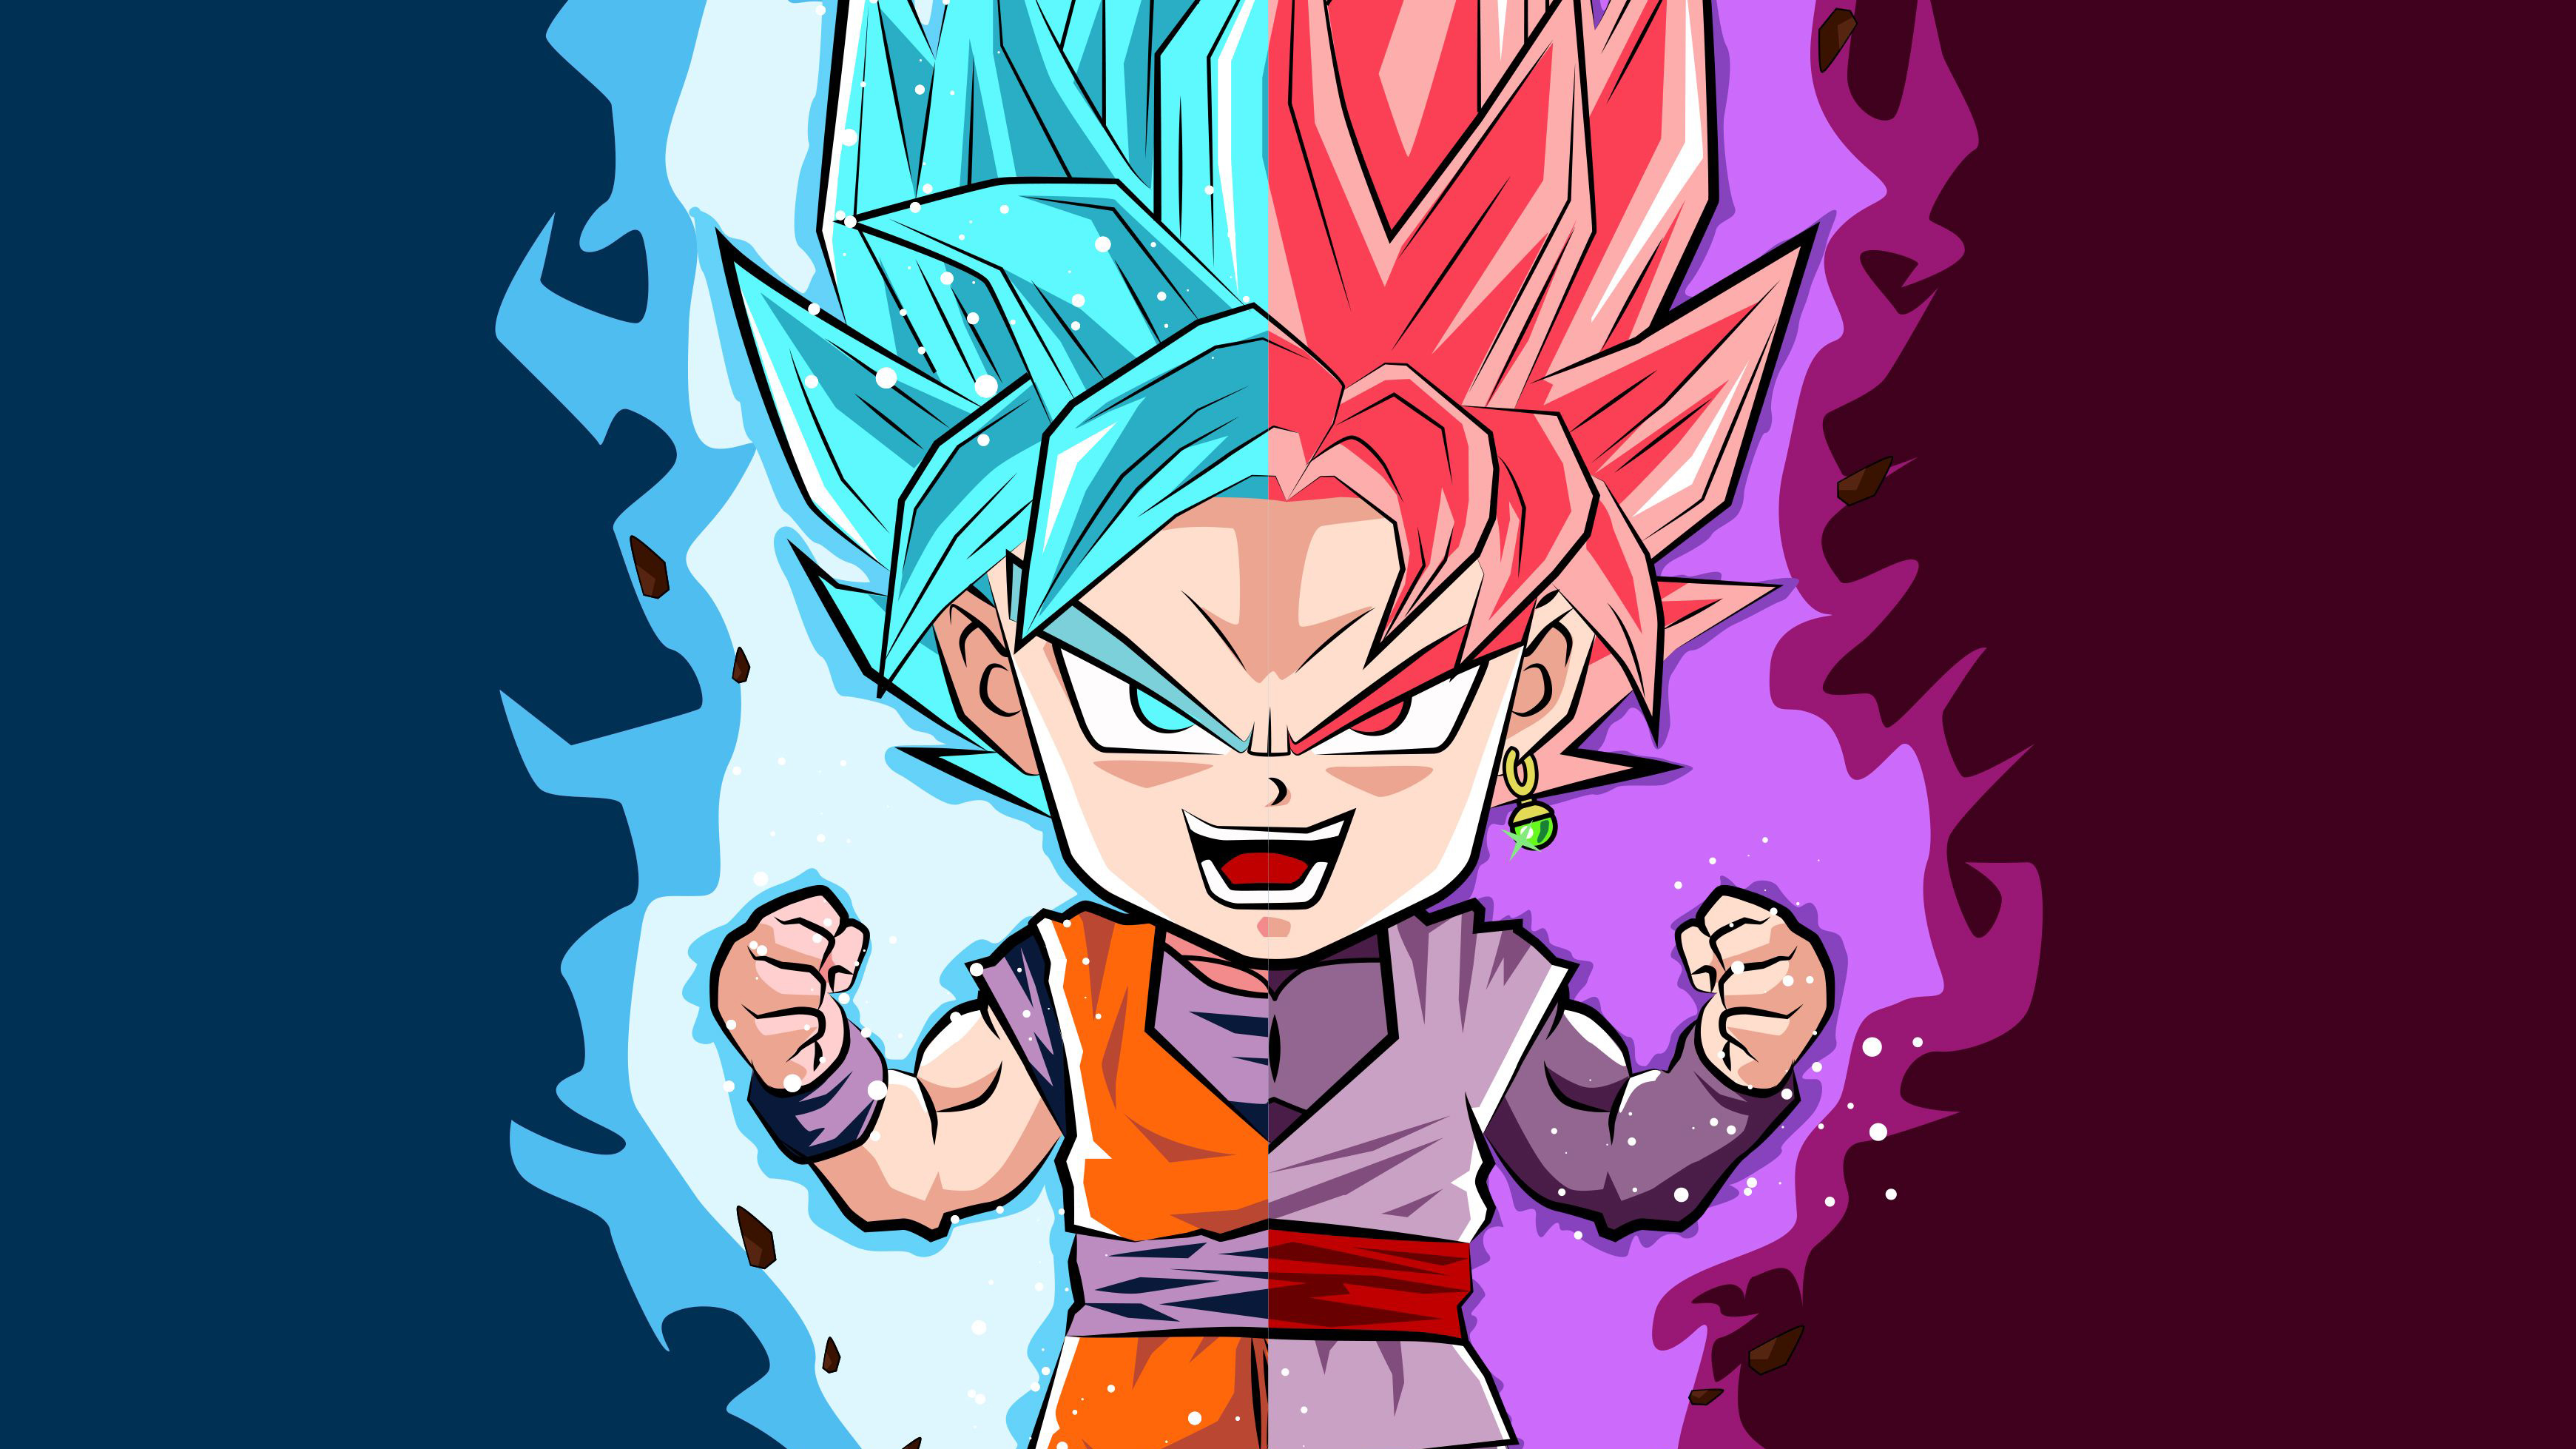 Dragon Ball Super Art 4k Hd Games 4k Wallpapers Images